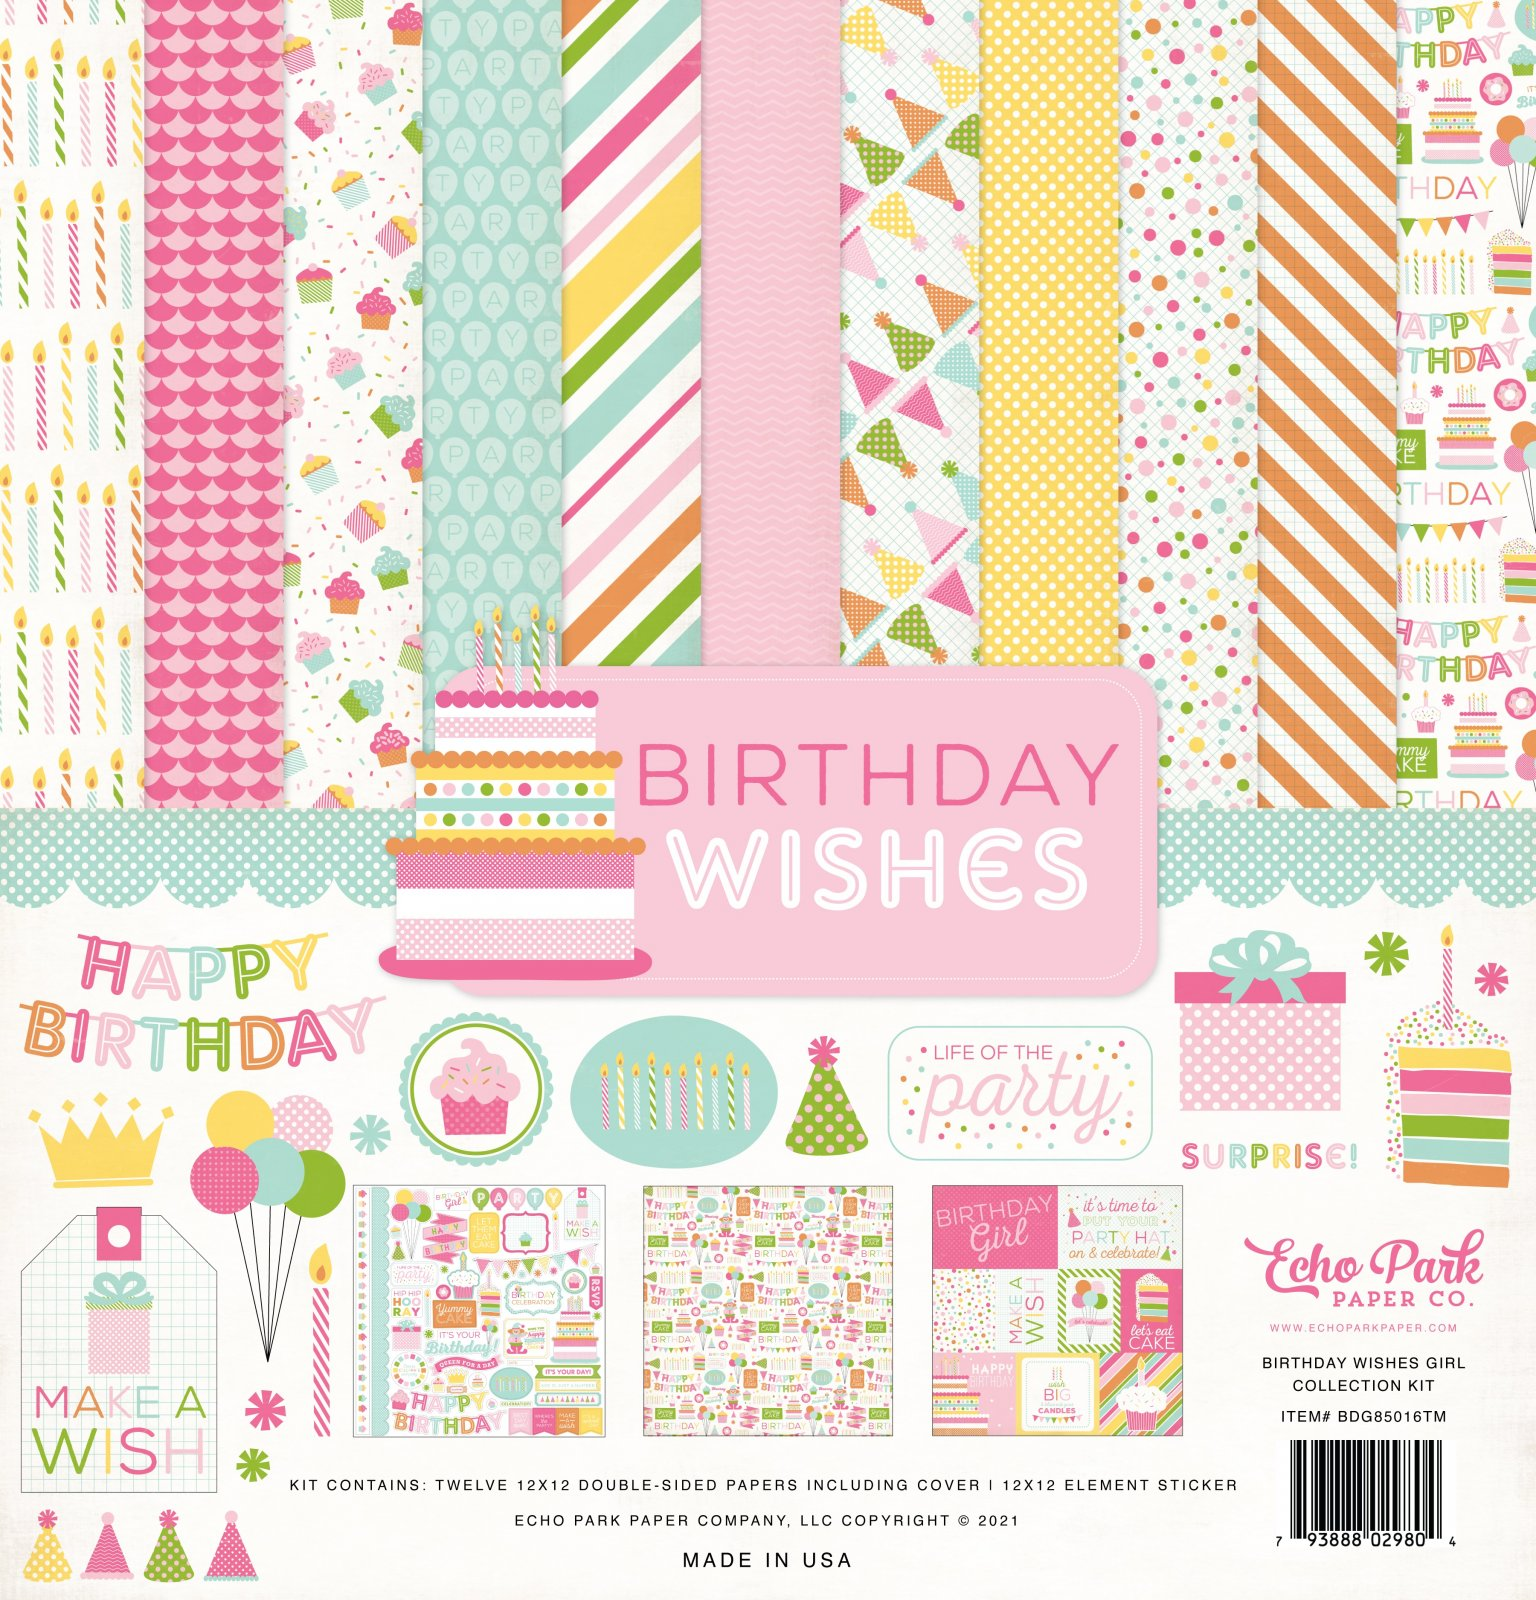 Echo Park Collection Kit 12x12 - Birthday Wishes Girl